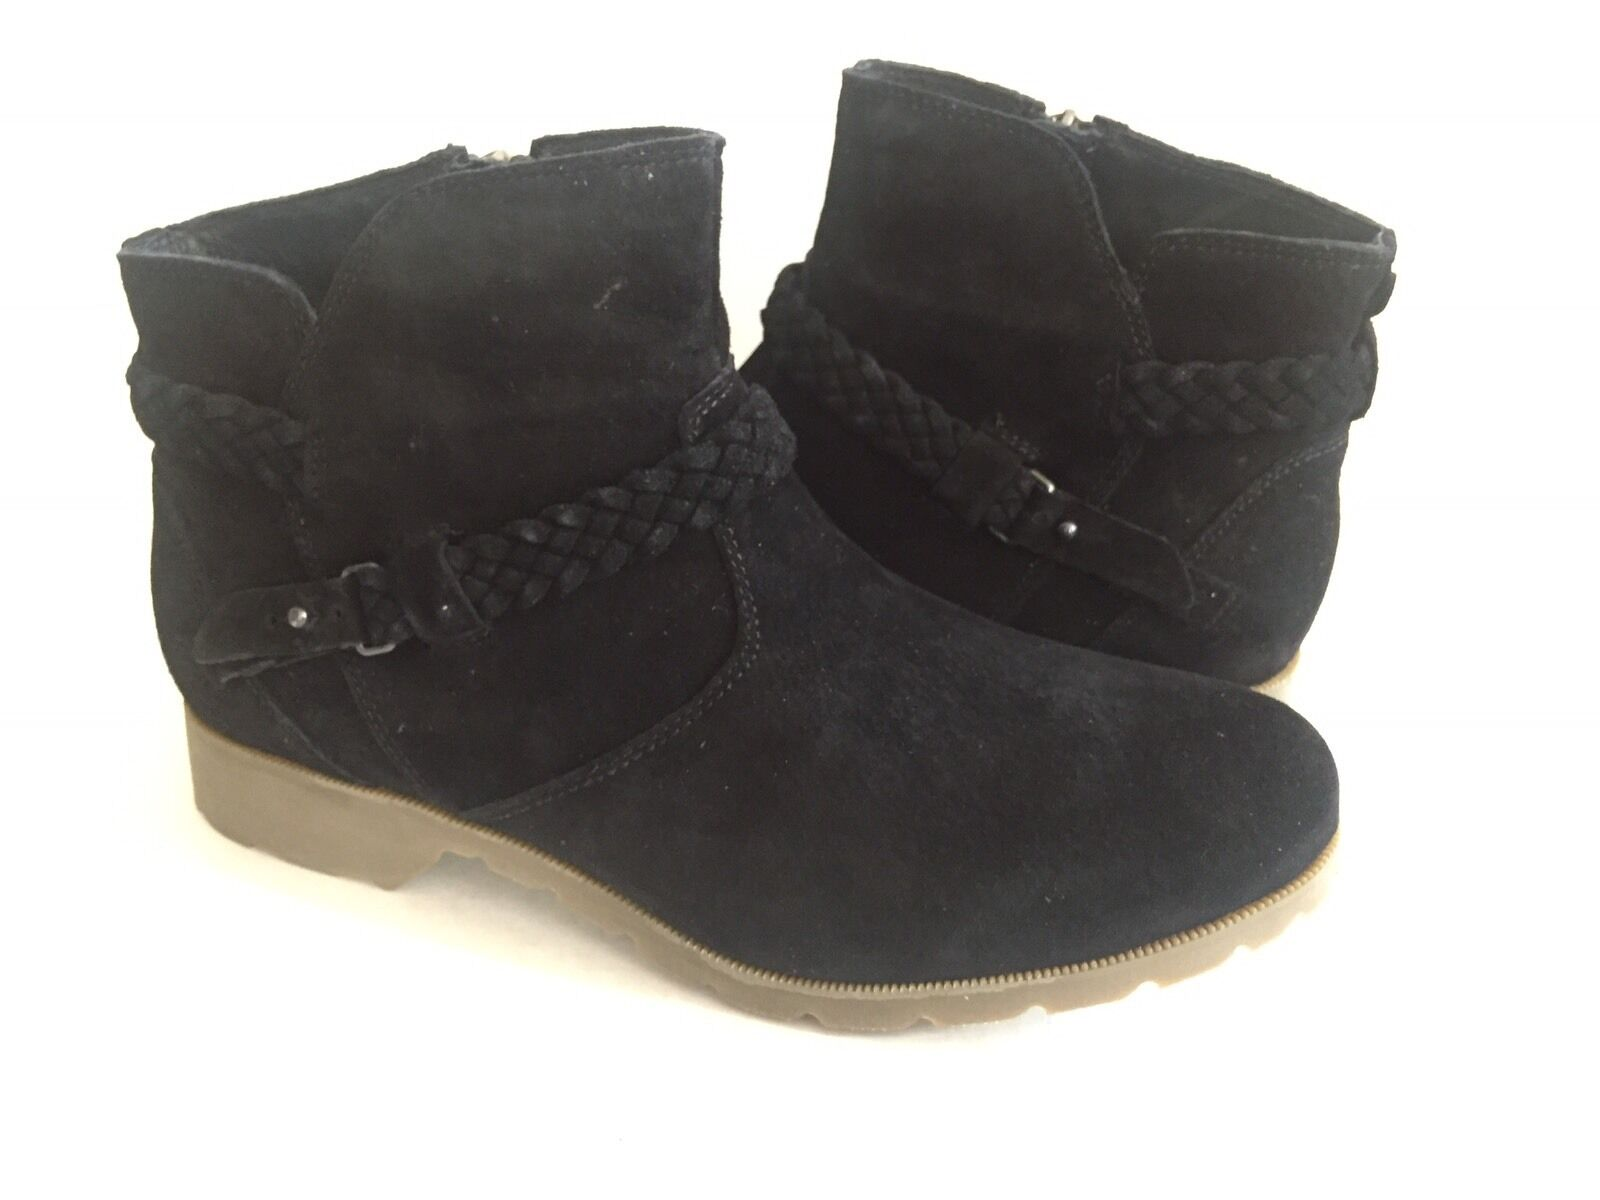 TEVA DE BLACK LA VINA WOMEN ANKLE BLACK DE SUEDE BOOT US 8.5 / EU 39.5 / UK 6.5 NIB 1c63fa